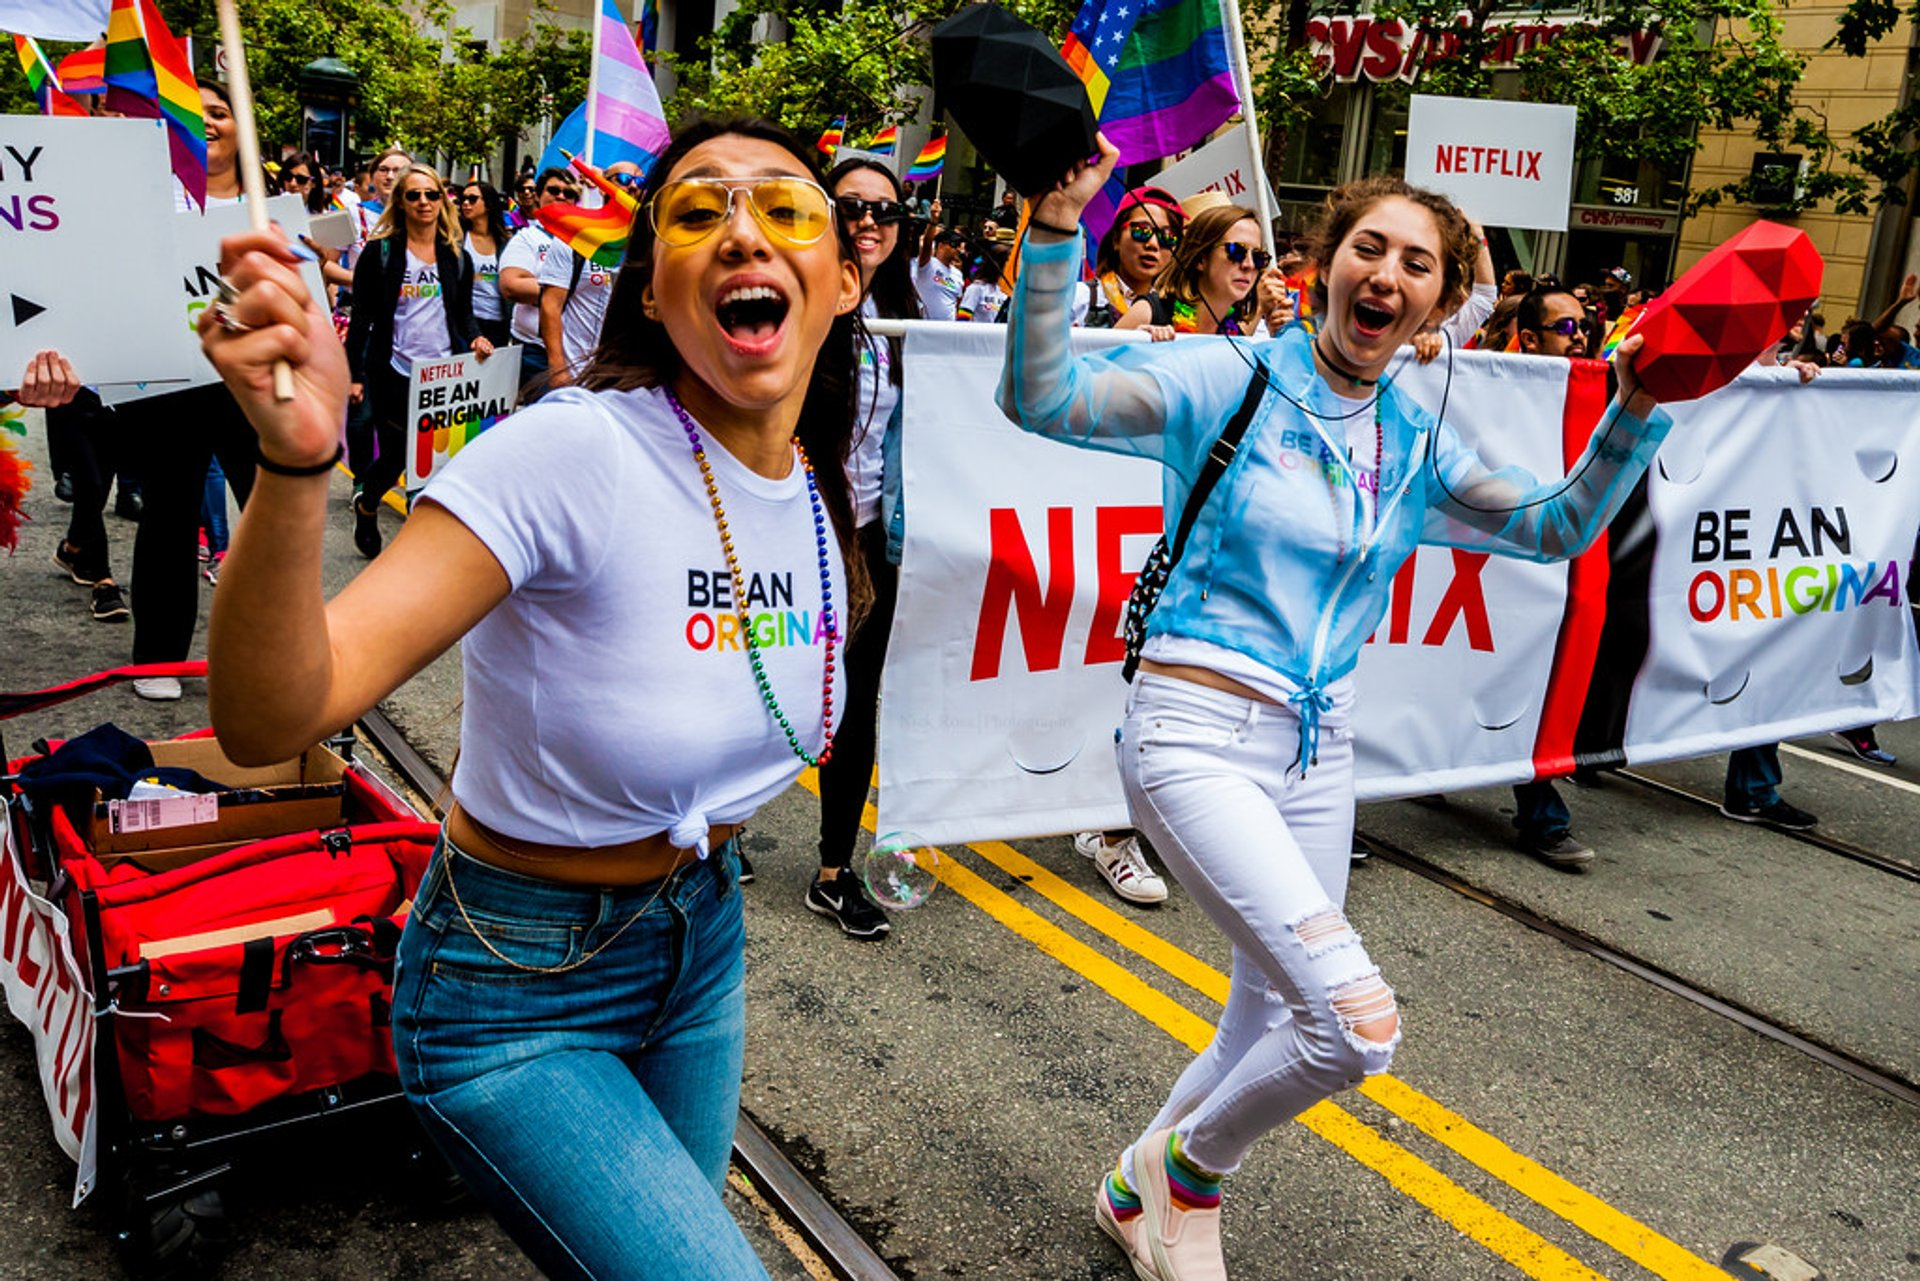 Best time for San Francisco Pride in San Francisco 2020